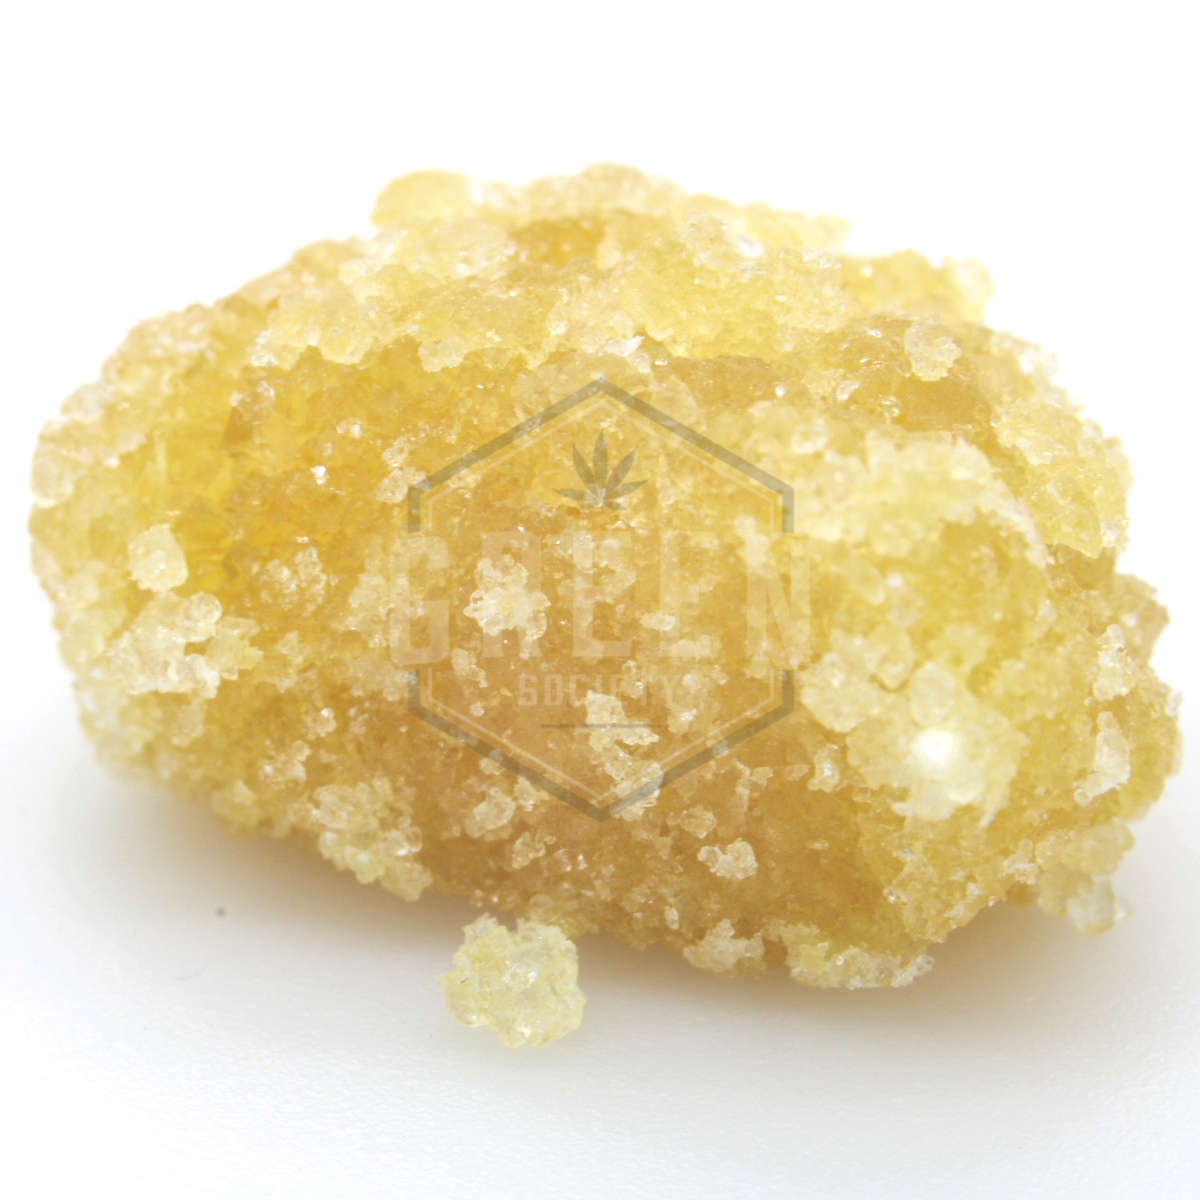 91 Supreme THCa Crystalline by Green Society - Image © 2018 Green Society. All Rights Reserved.